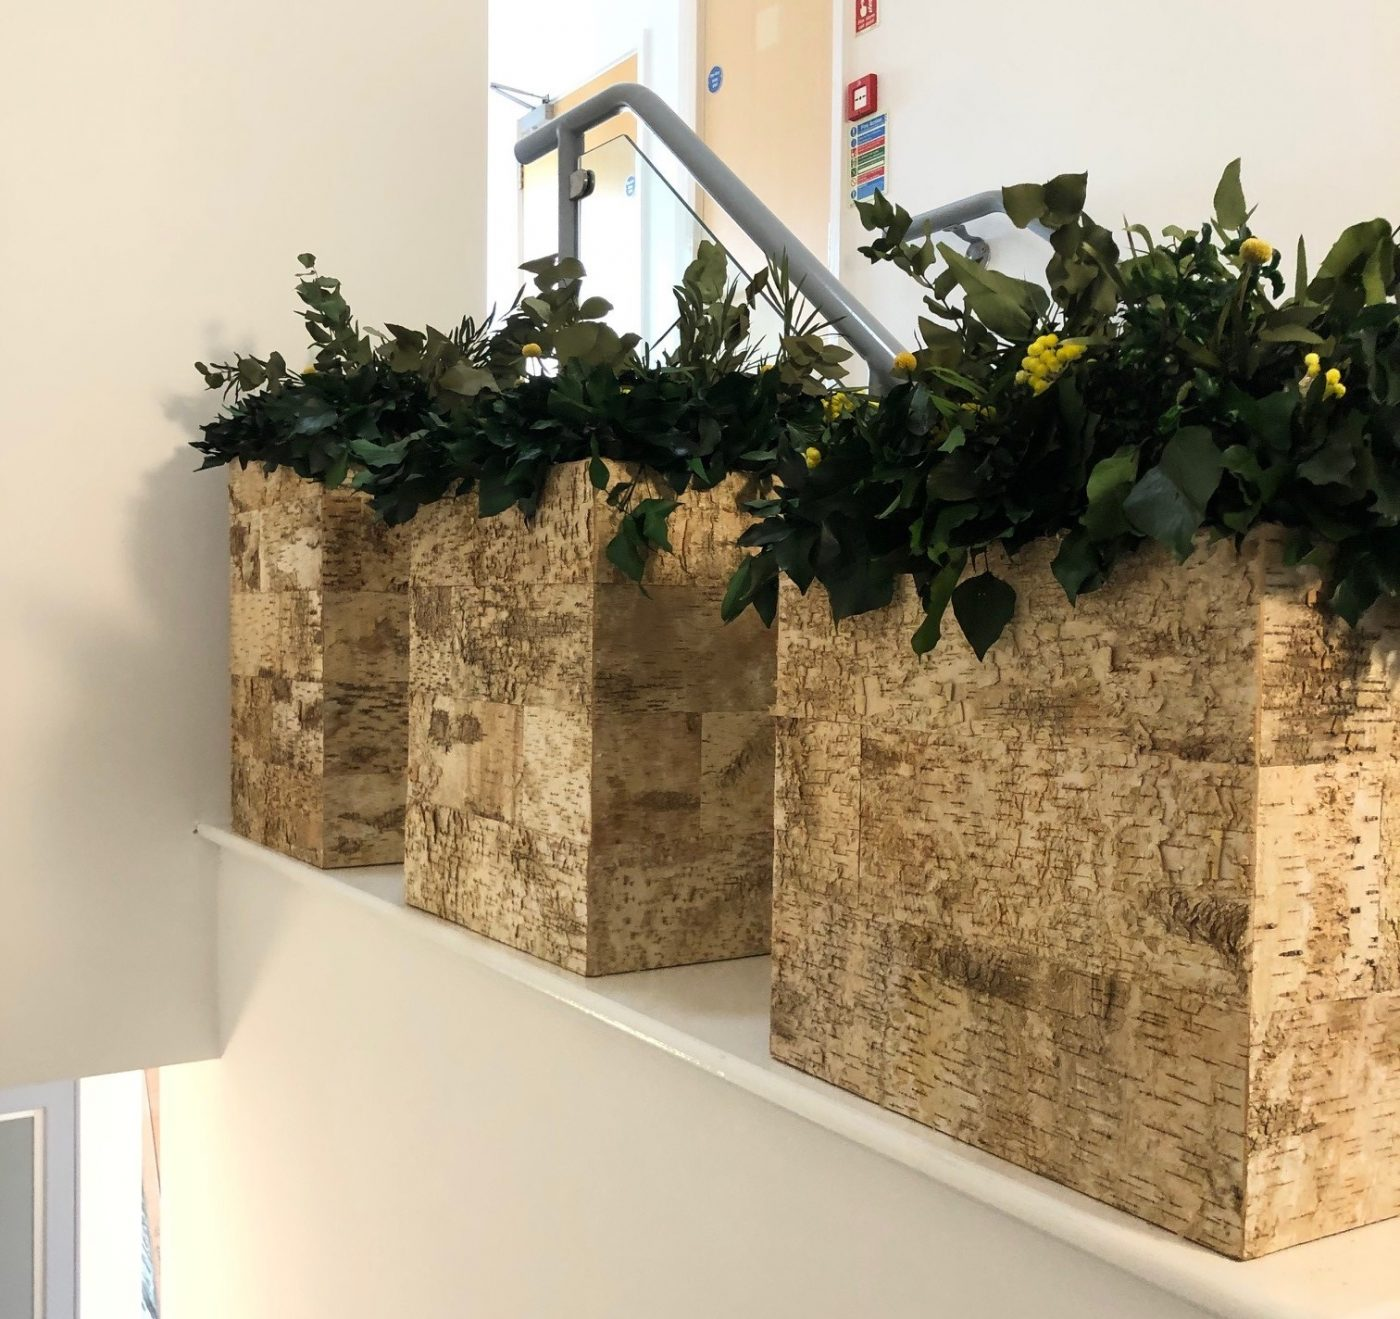 Innerspace Cheshire - Natureverde - Foliage - Planters